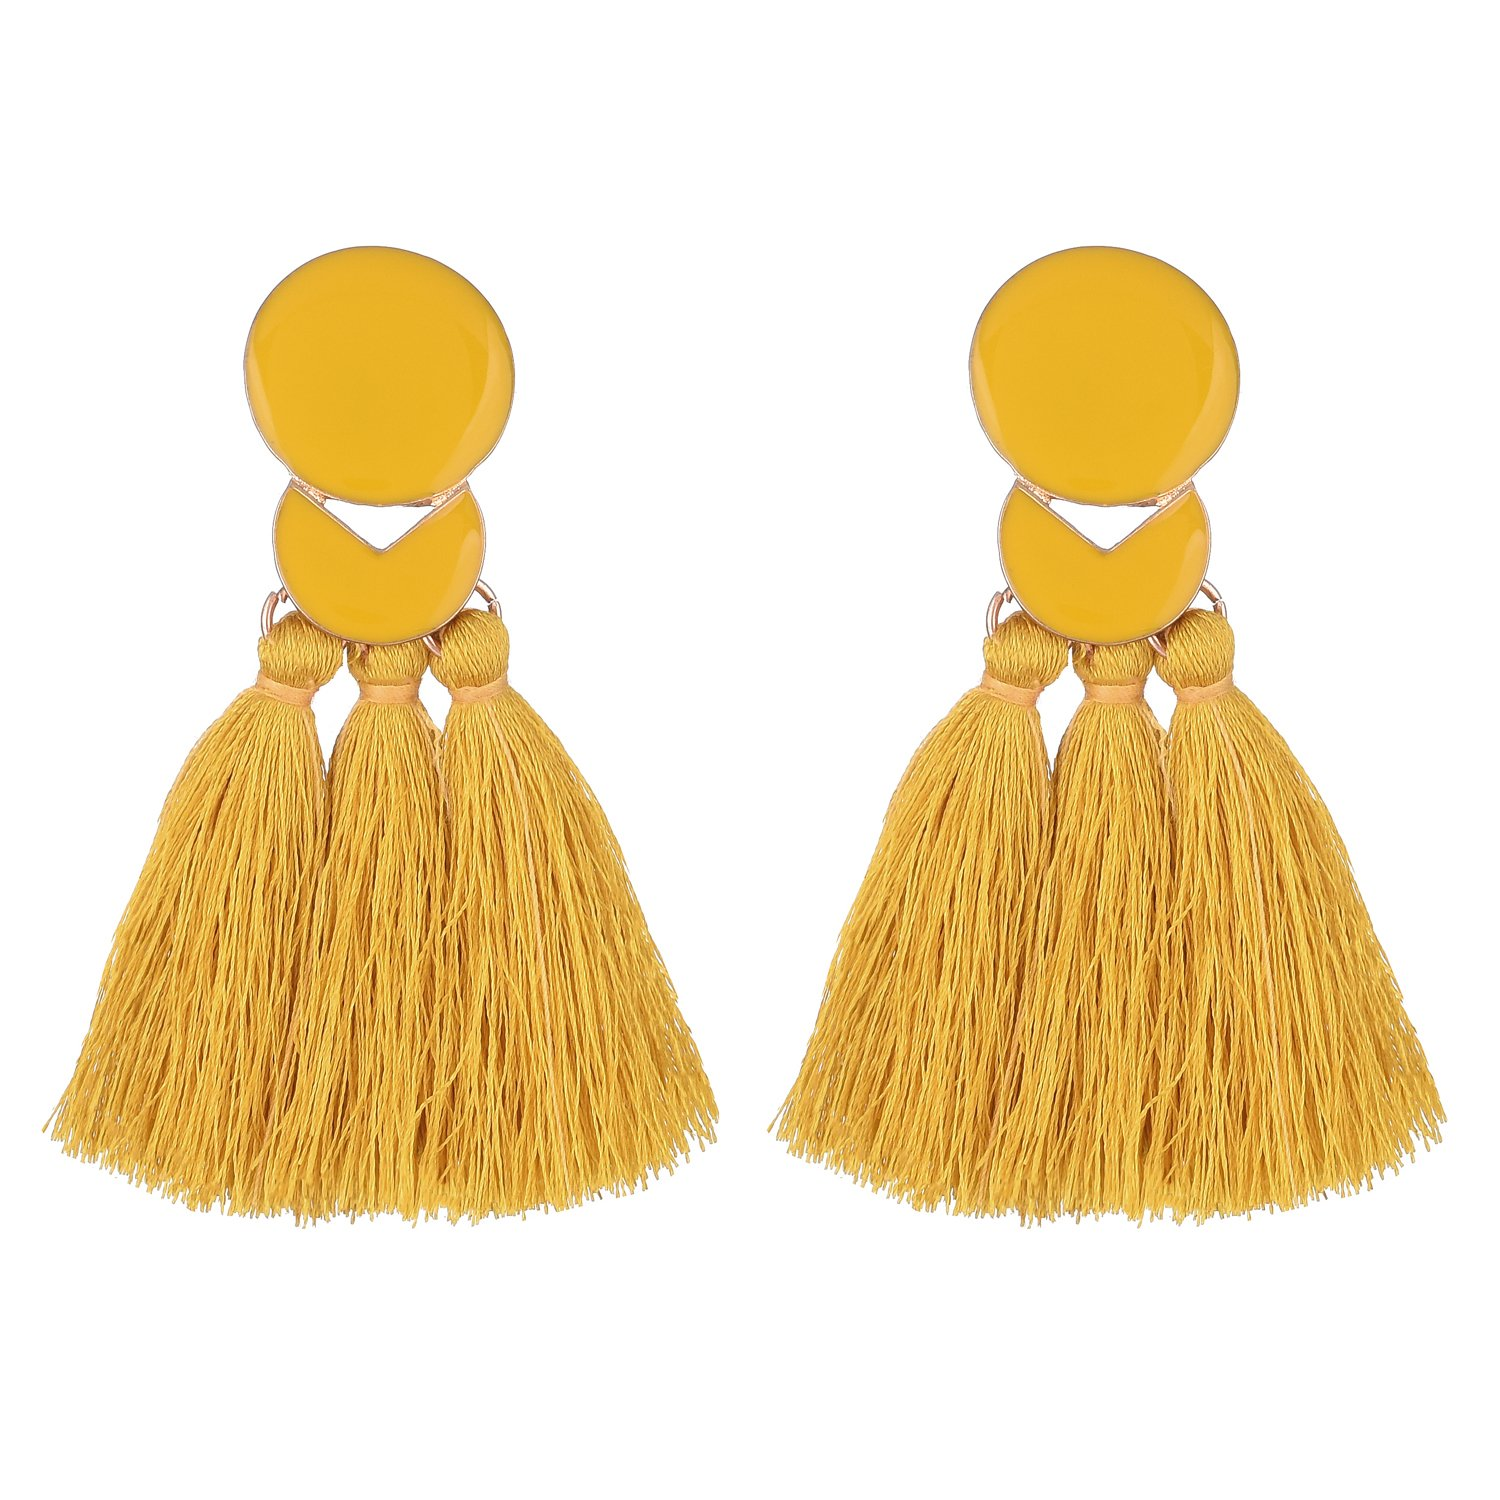 D EXCEED Fashion Statement Thread Tassel Earrings Bohemian Chandelier Tassel Earrings Enamel Stud Earrings for Women Yellow